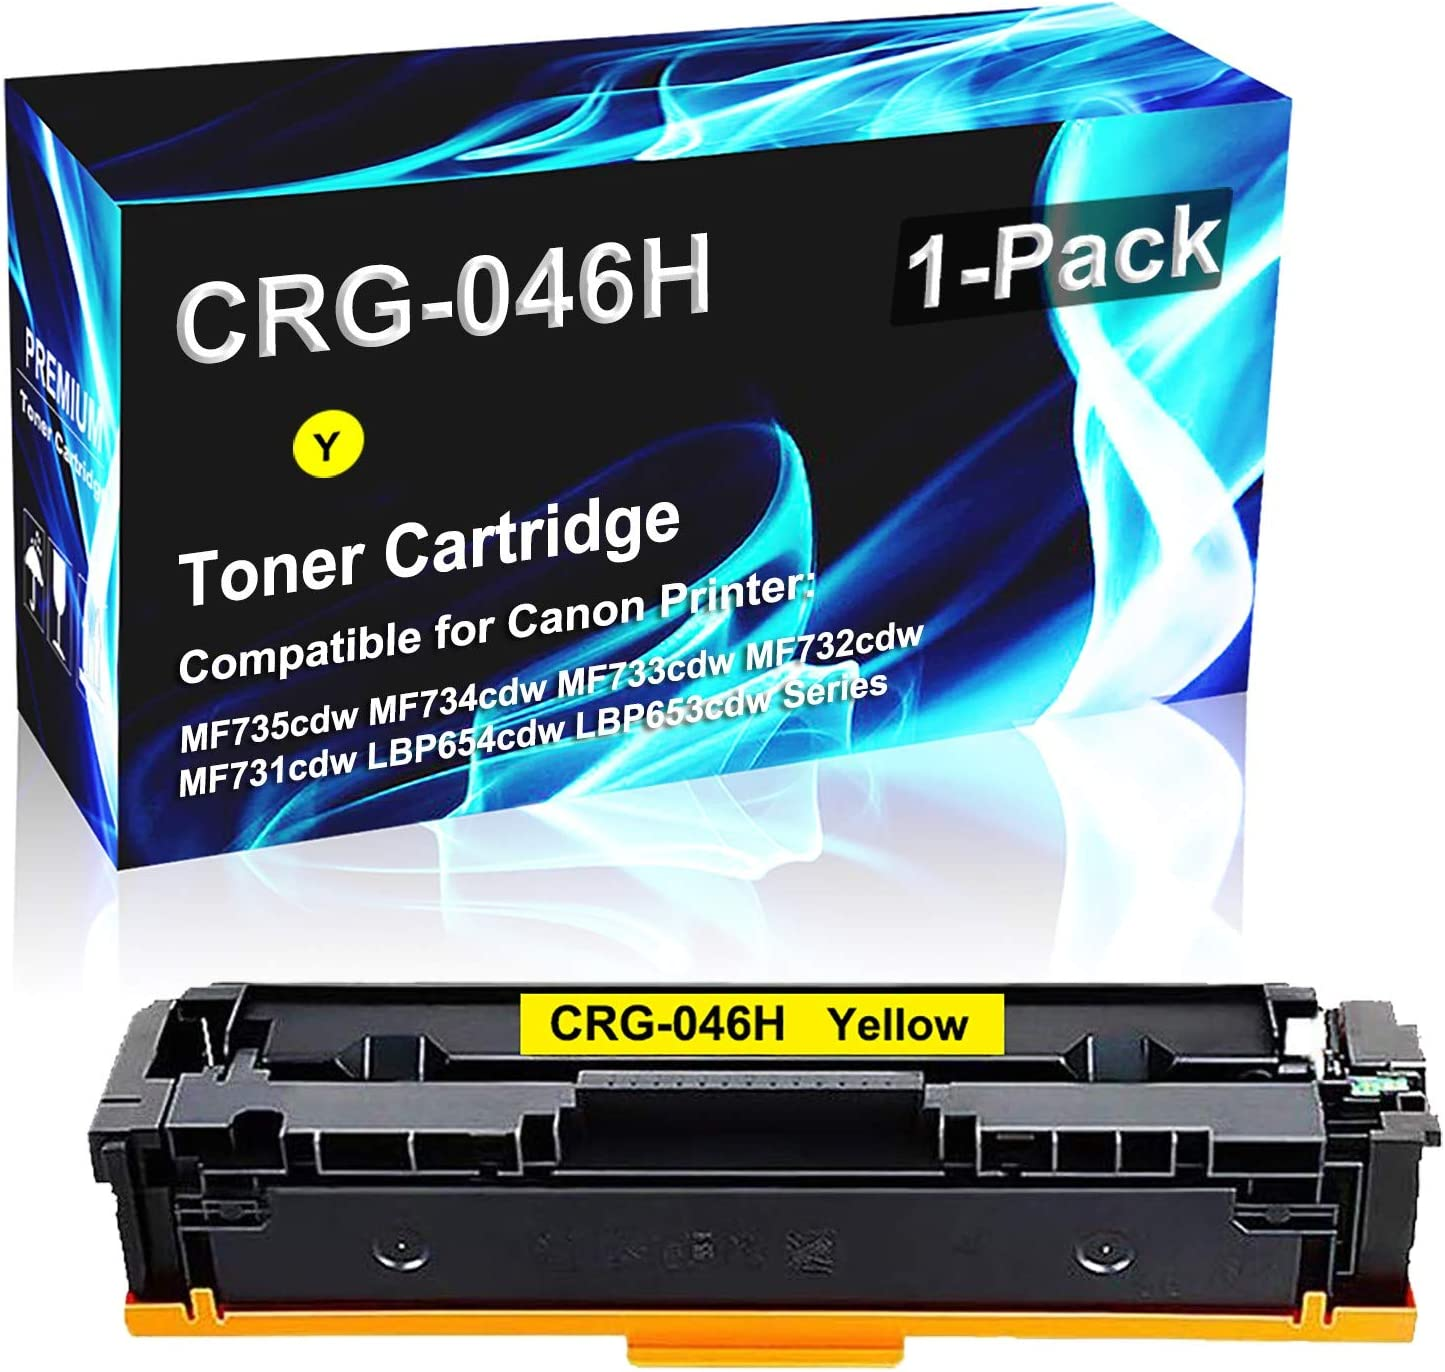 1 Pack (Yellow) Compatible High Yield MF735cdw MF734cdw MF733cdw MF731cdw LBP654cdw LBP653cdw Printer Toner Replacement for Canon CRG046H   046H   CRG-046H Laser Printer Toner Cartridge